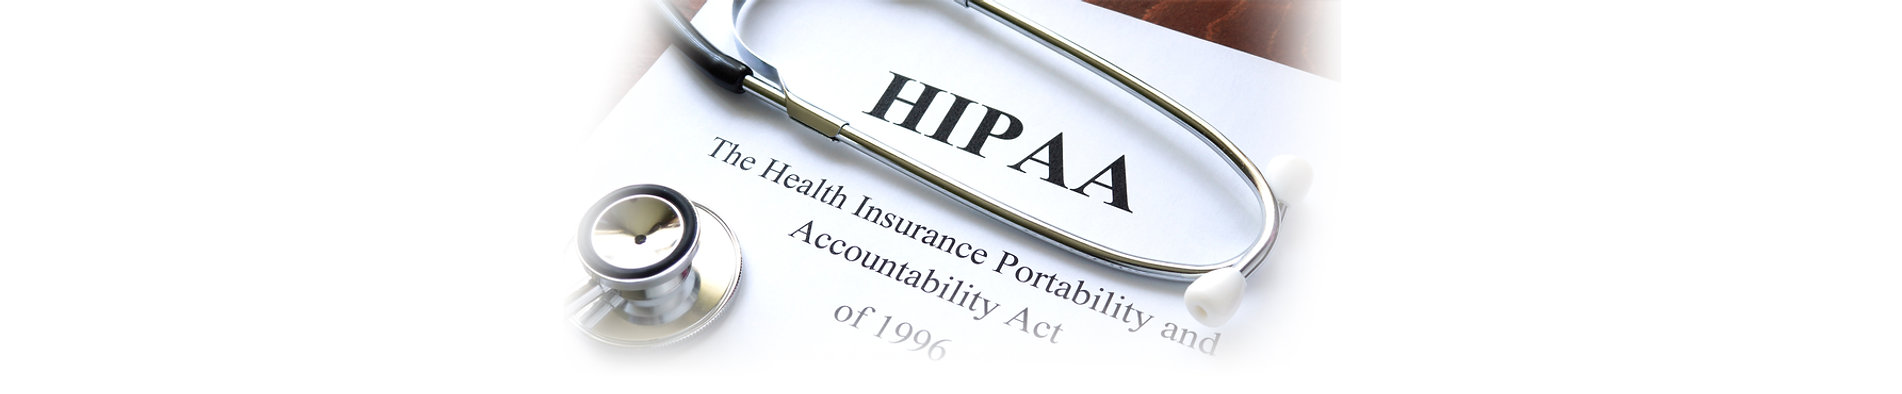 HIPAA stock image_DP88720014_lo res for